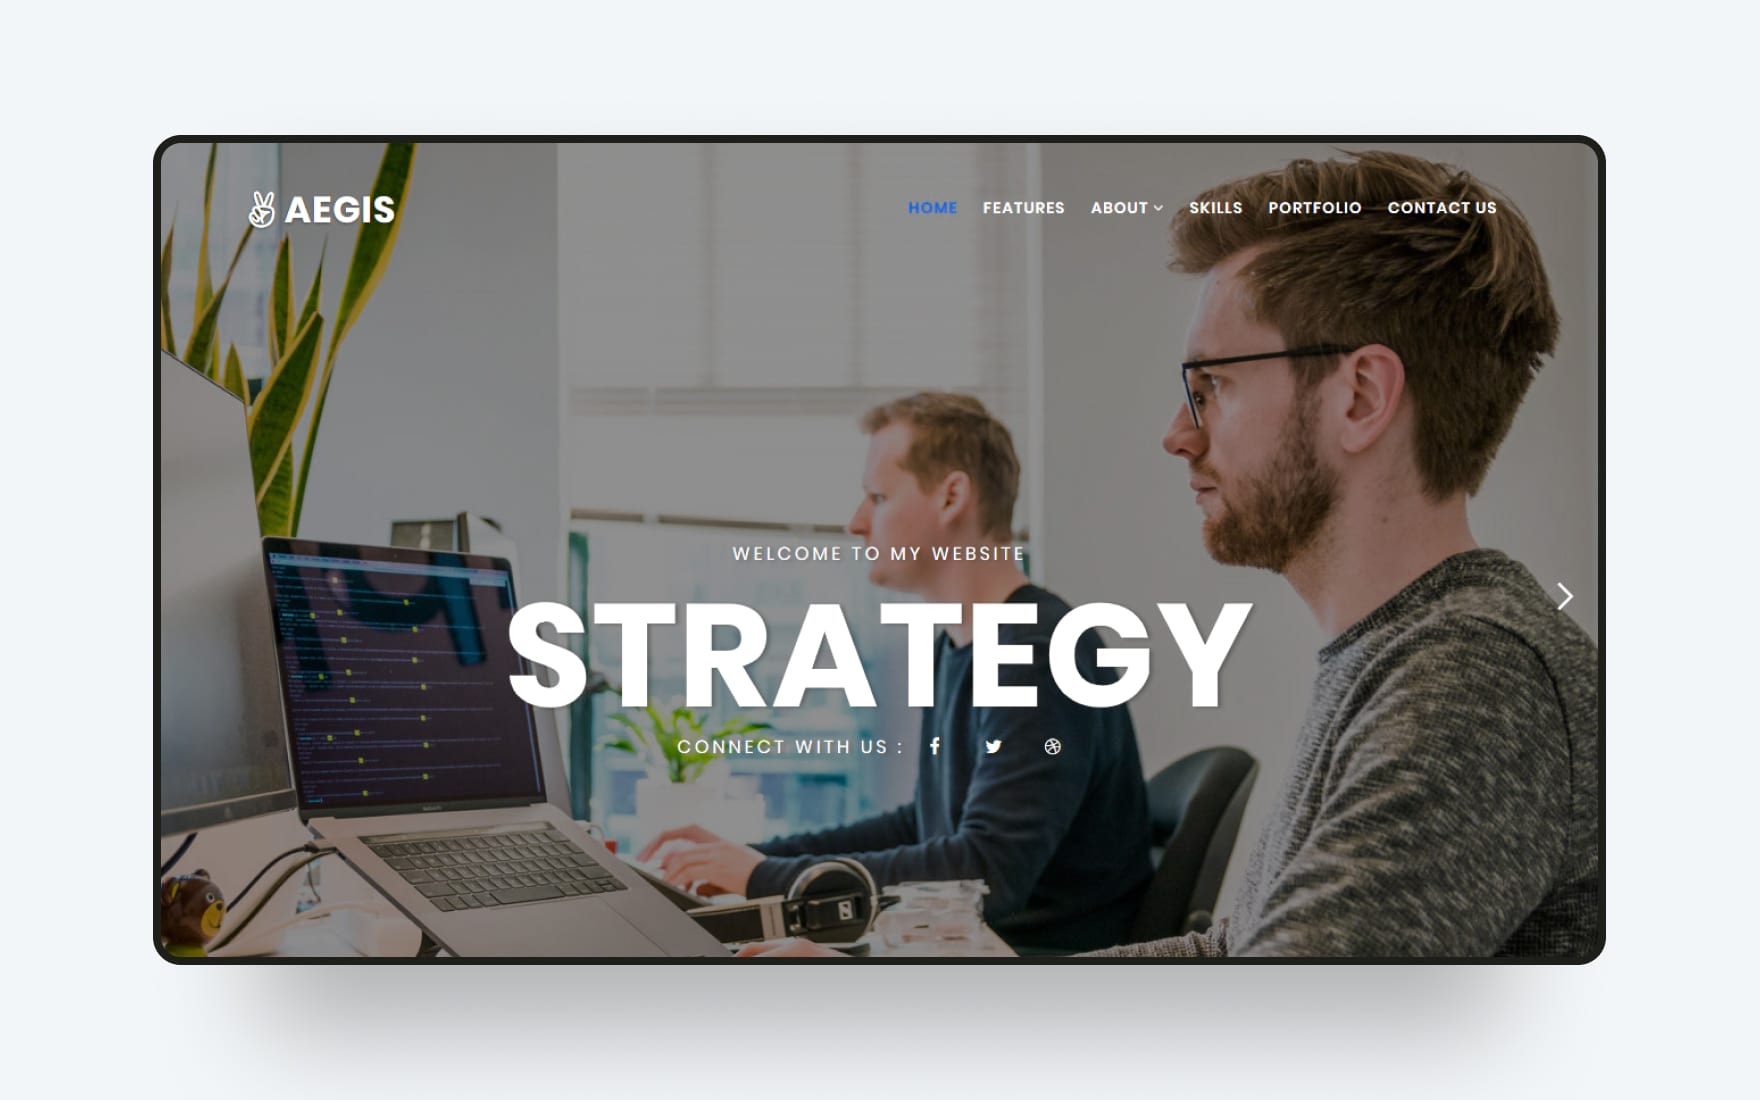 Aegis Coraporate Category Bootstrap Responsive Website Template